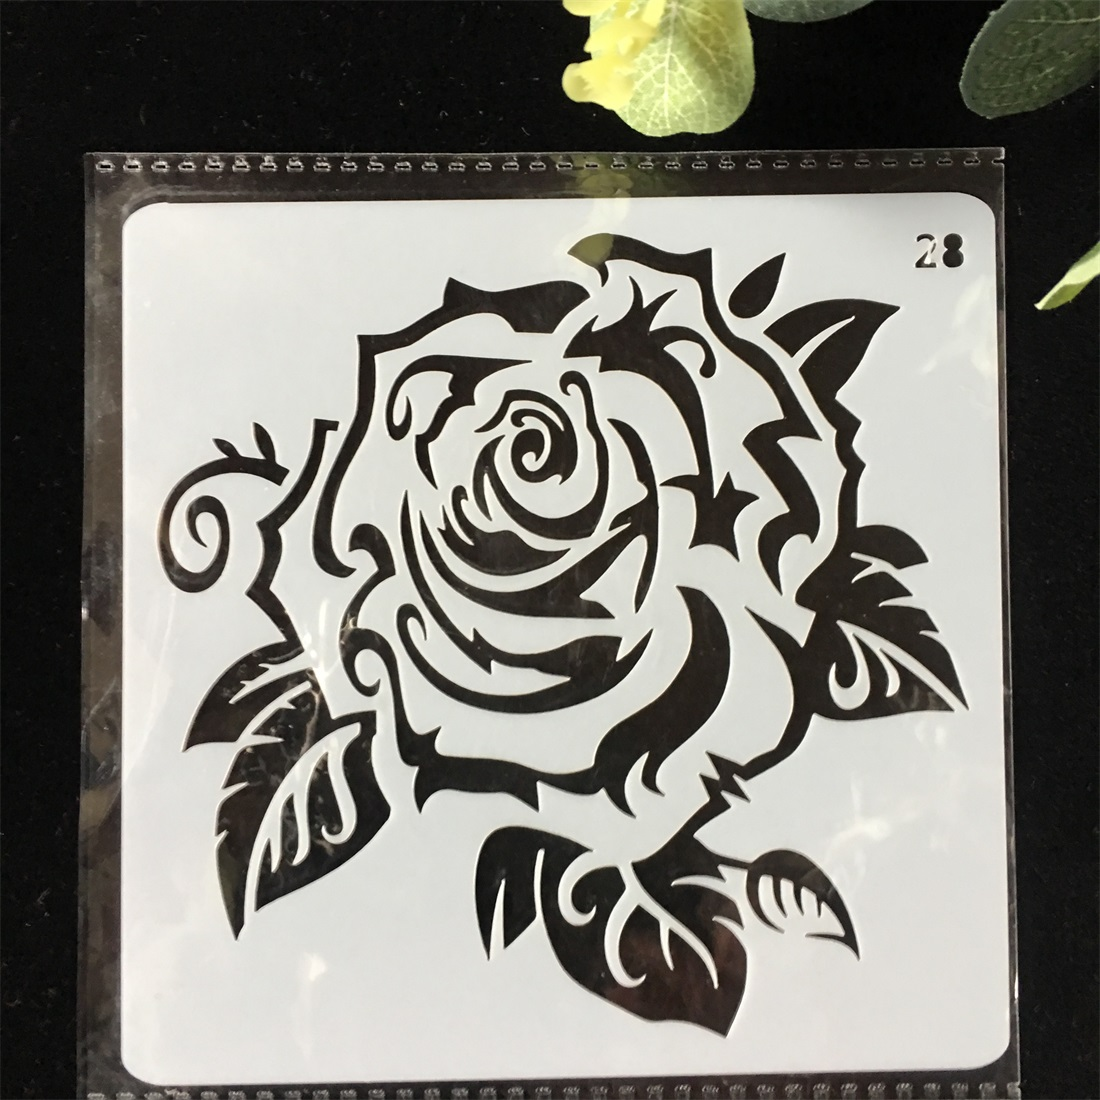 1Pcs 13cm Rose Flower  DIY Layering Stencils Wall Painting Scrapbook Coloring Embossing Album Decorative Card Template